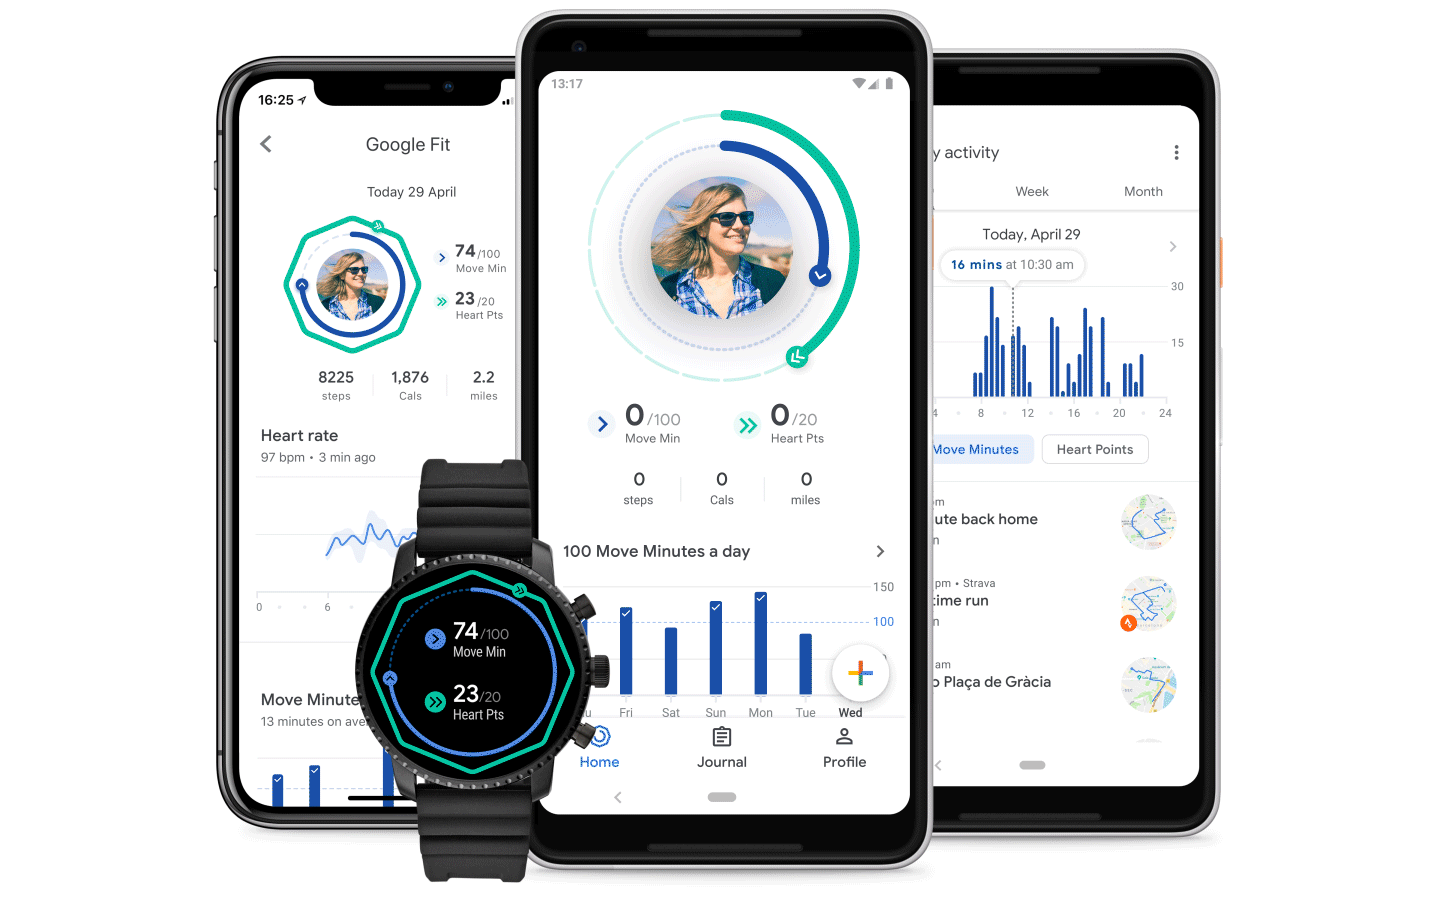 Google announces the redesigned Google Fit experience 1